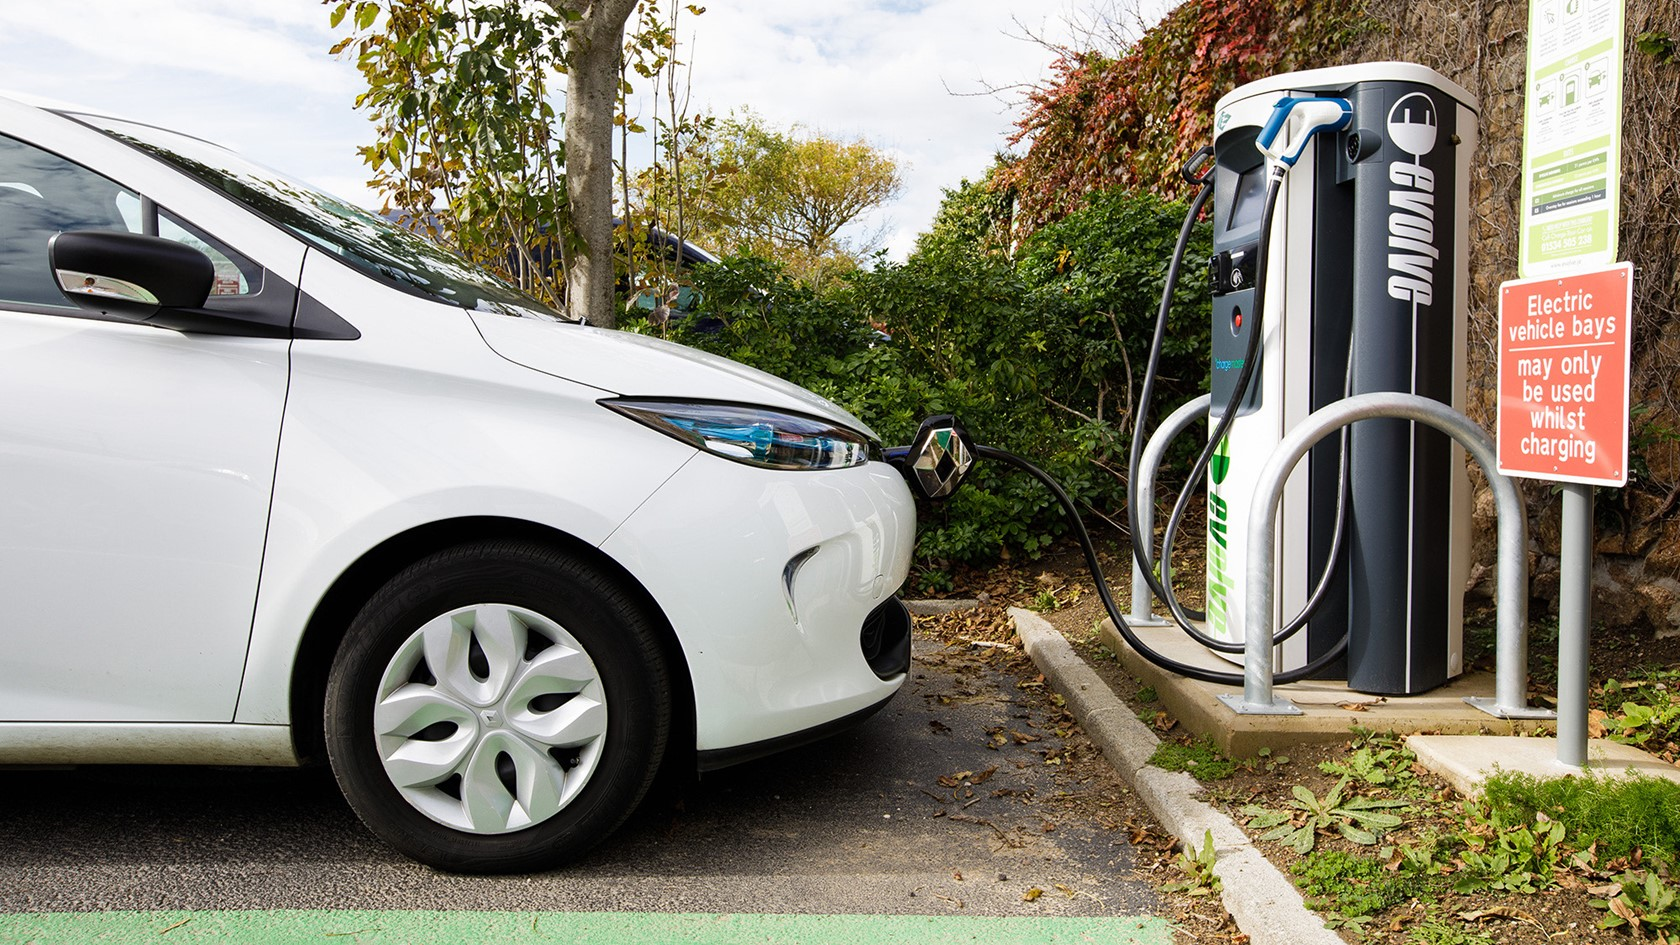 An electric vehicle charges at Red Houses in St Brelades.